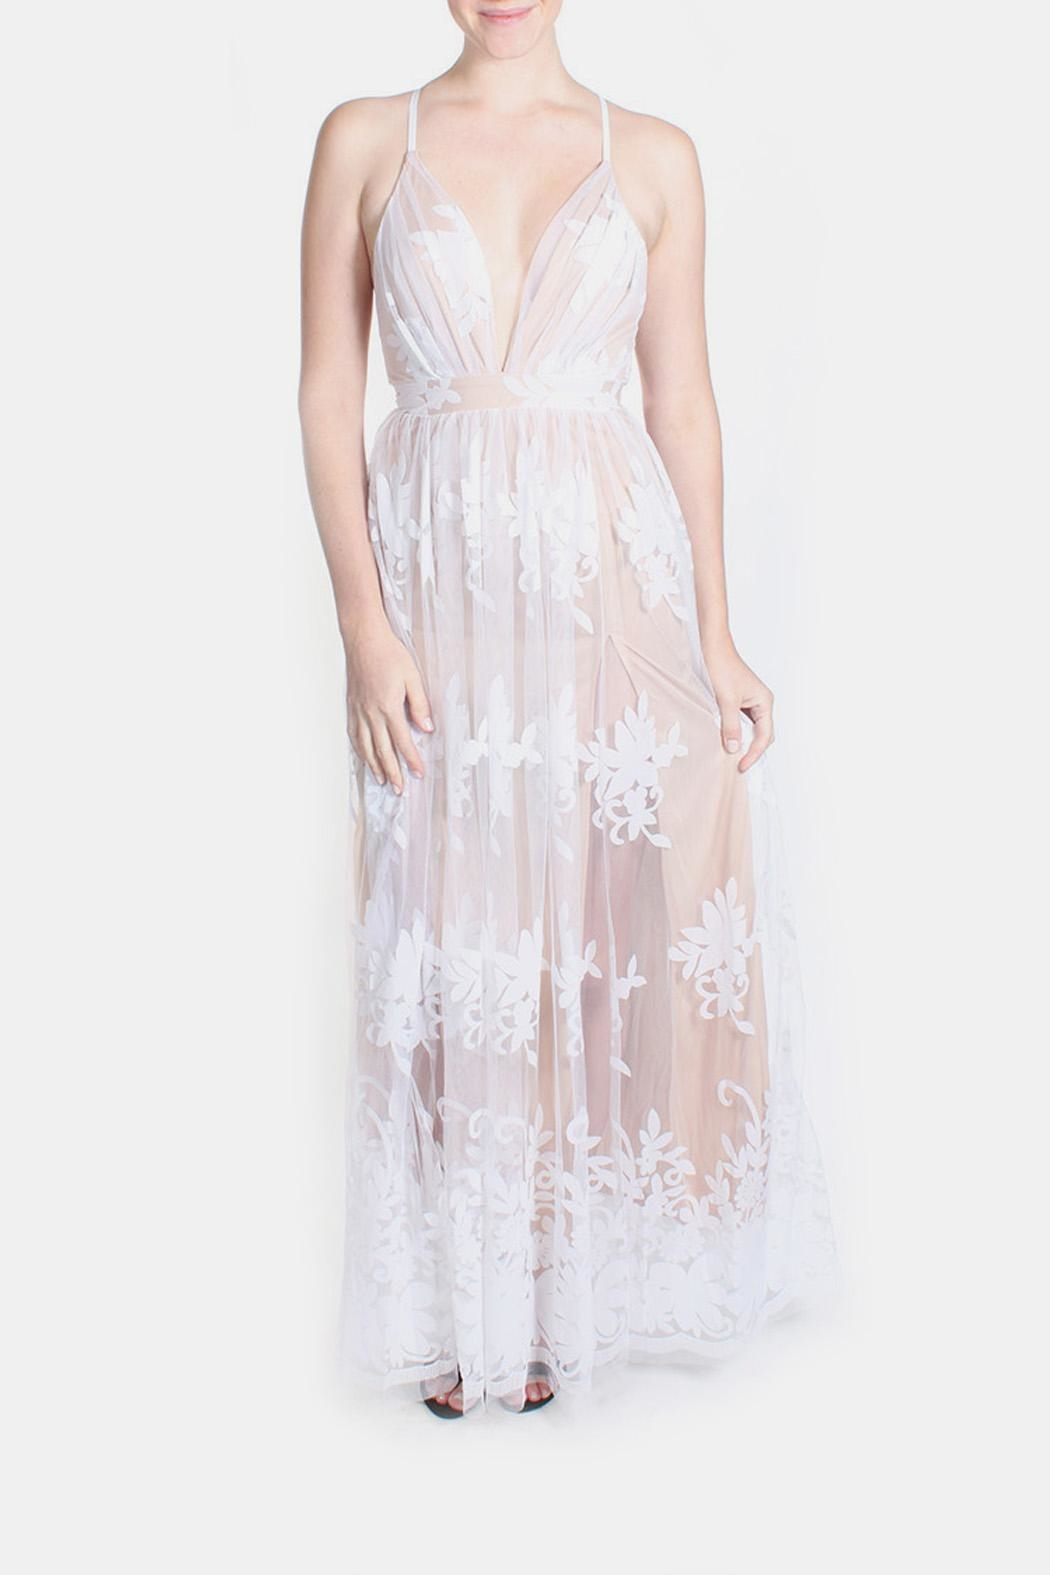 luxxel Nude Monochrome Floral Gown - Front Full Image